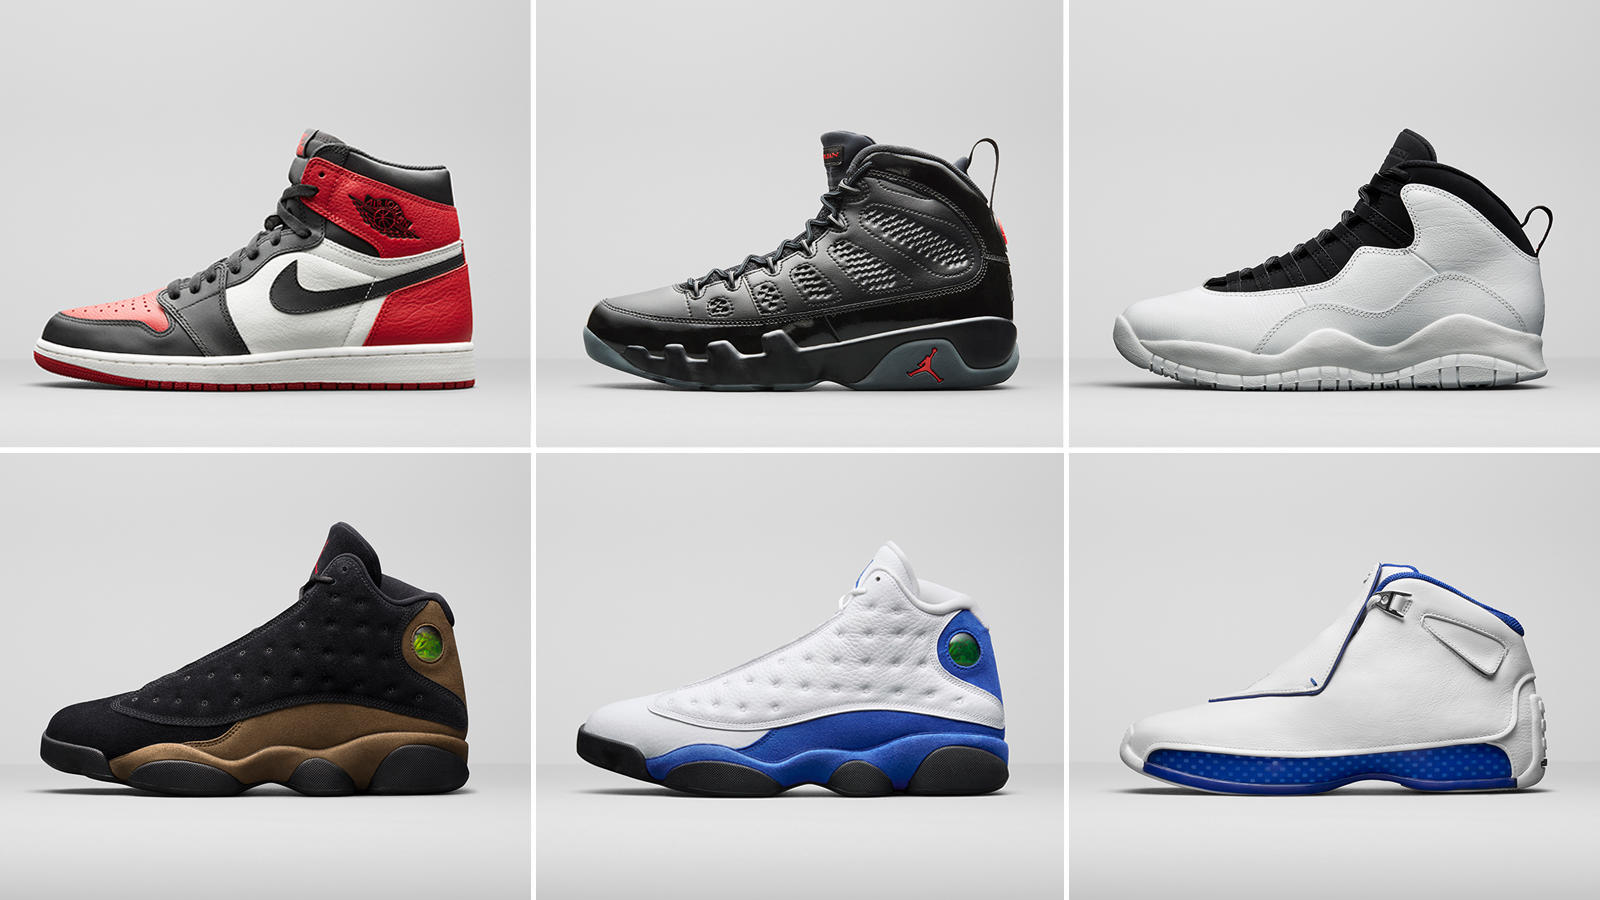 350130e12823 Jordan Brand Unveils Select Styles for the Spring Season - Nike News